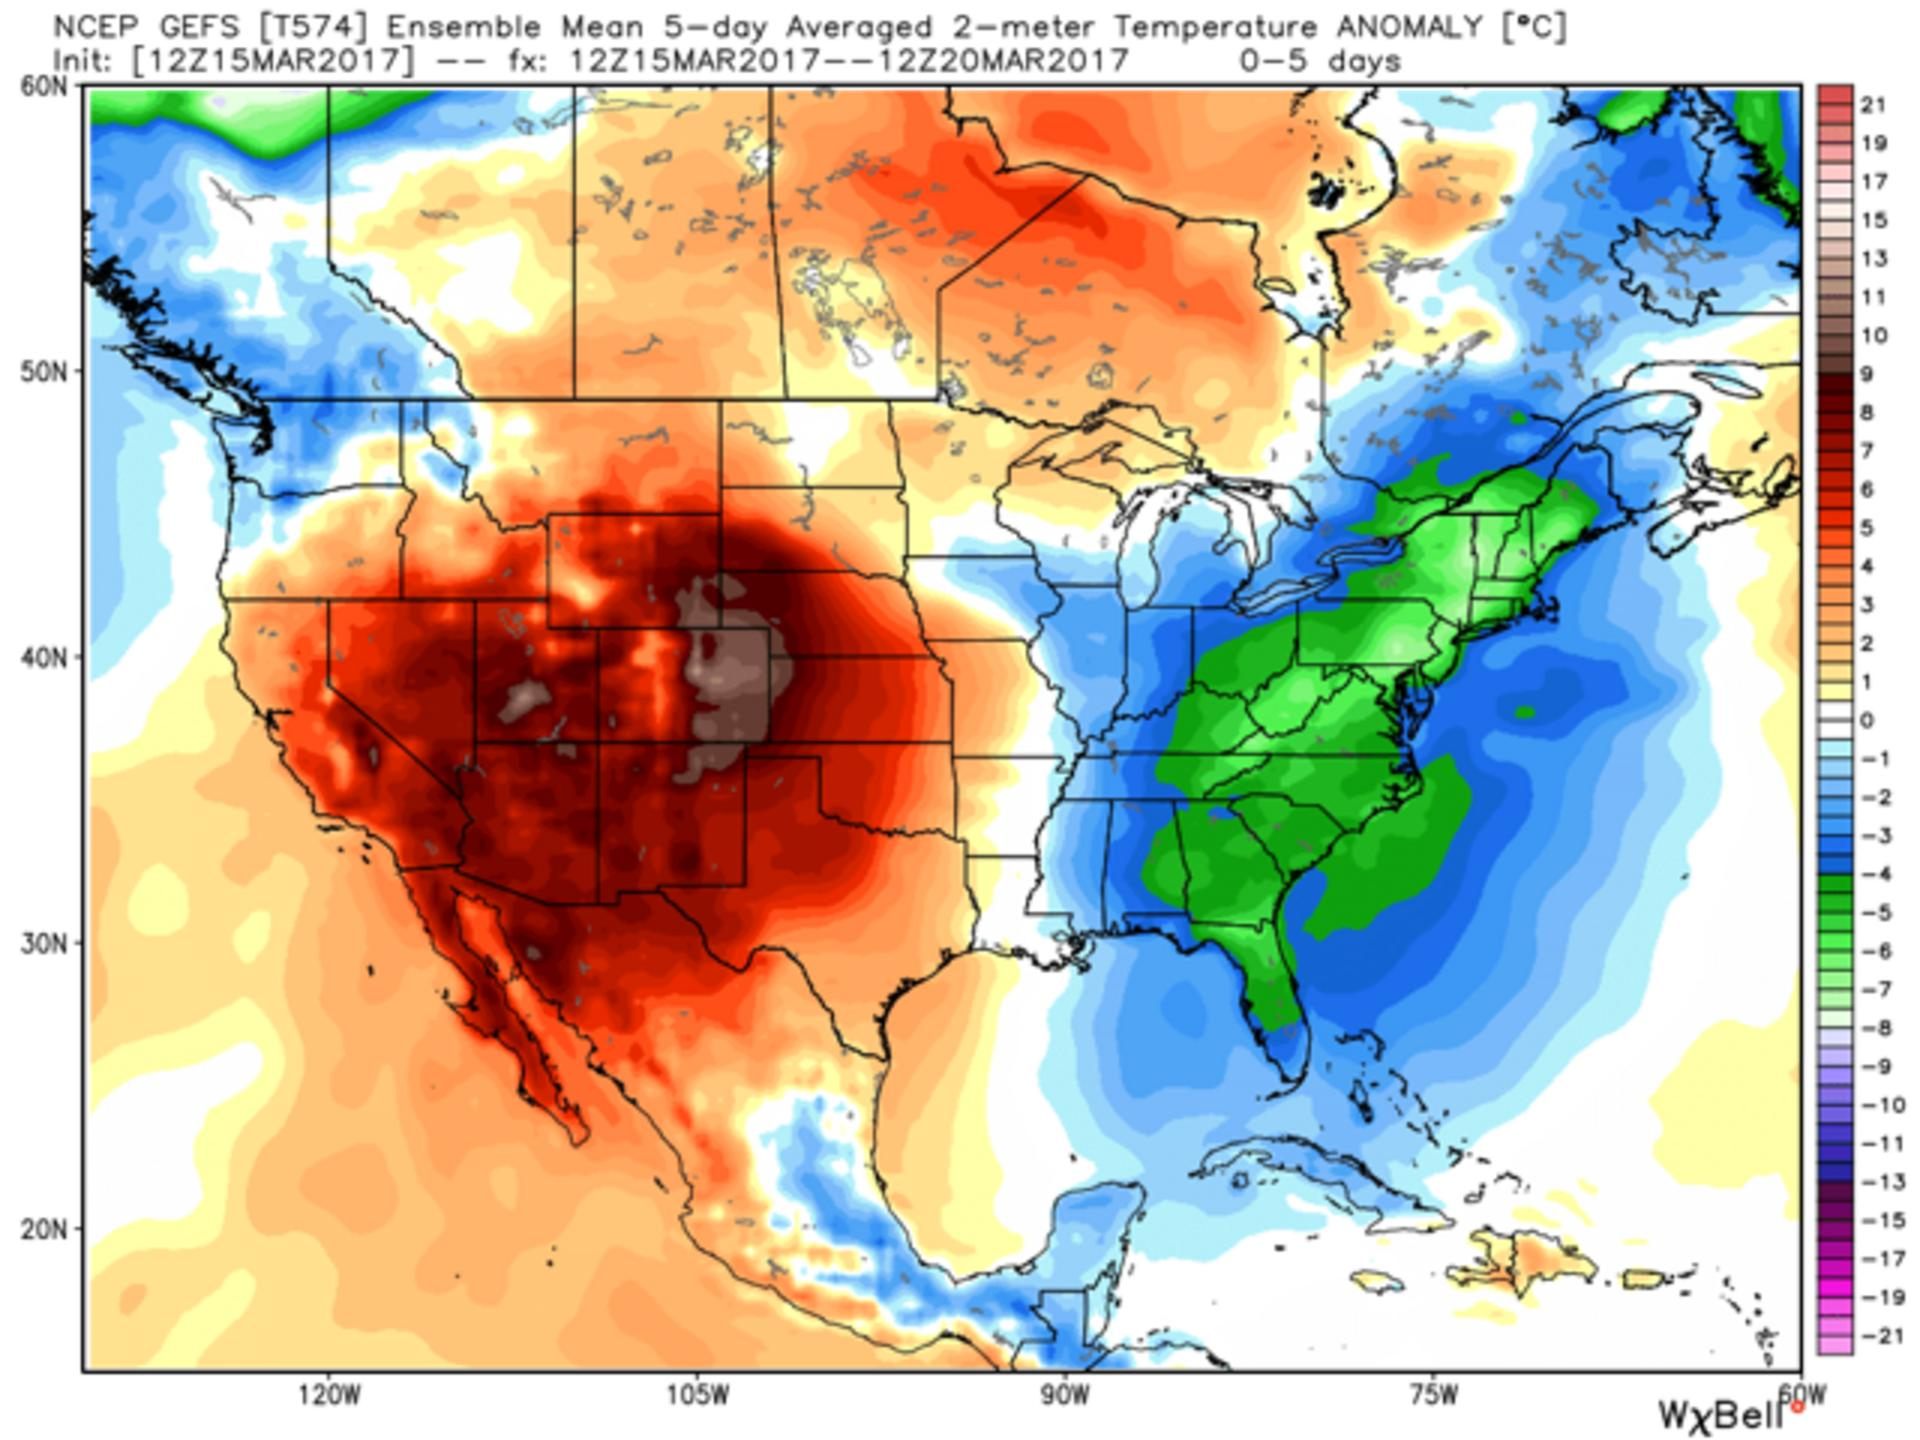 This graphic shows a cold pattern continuing for the eastern US through next week with all the warm air out west.